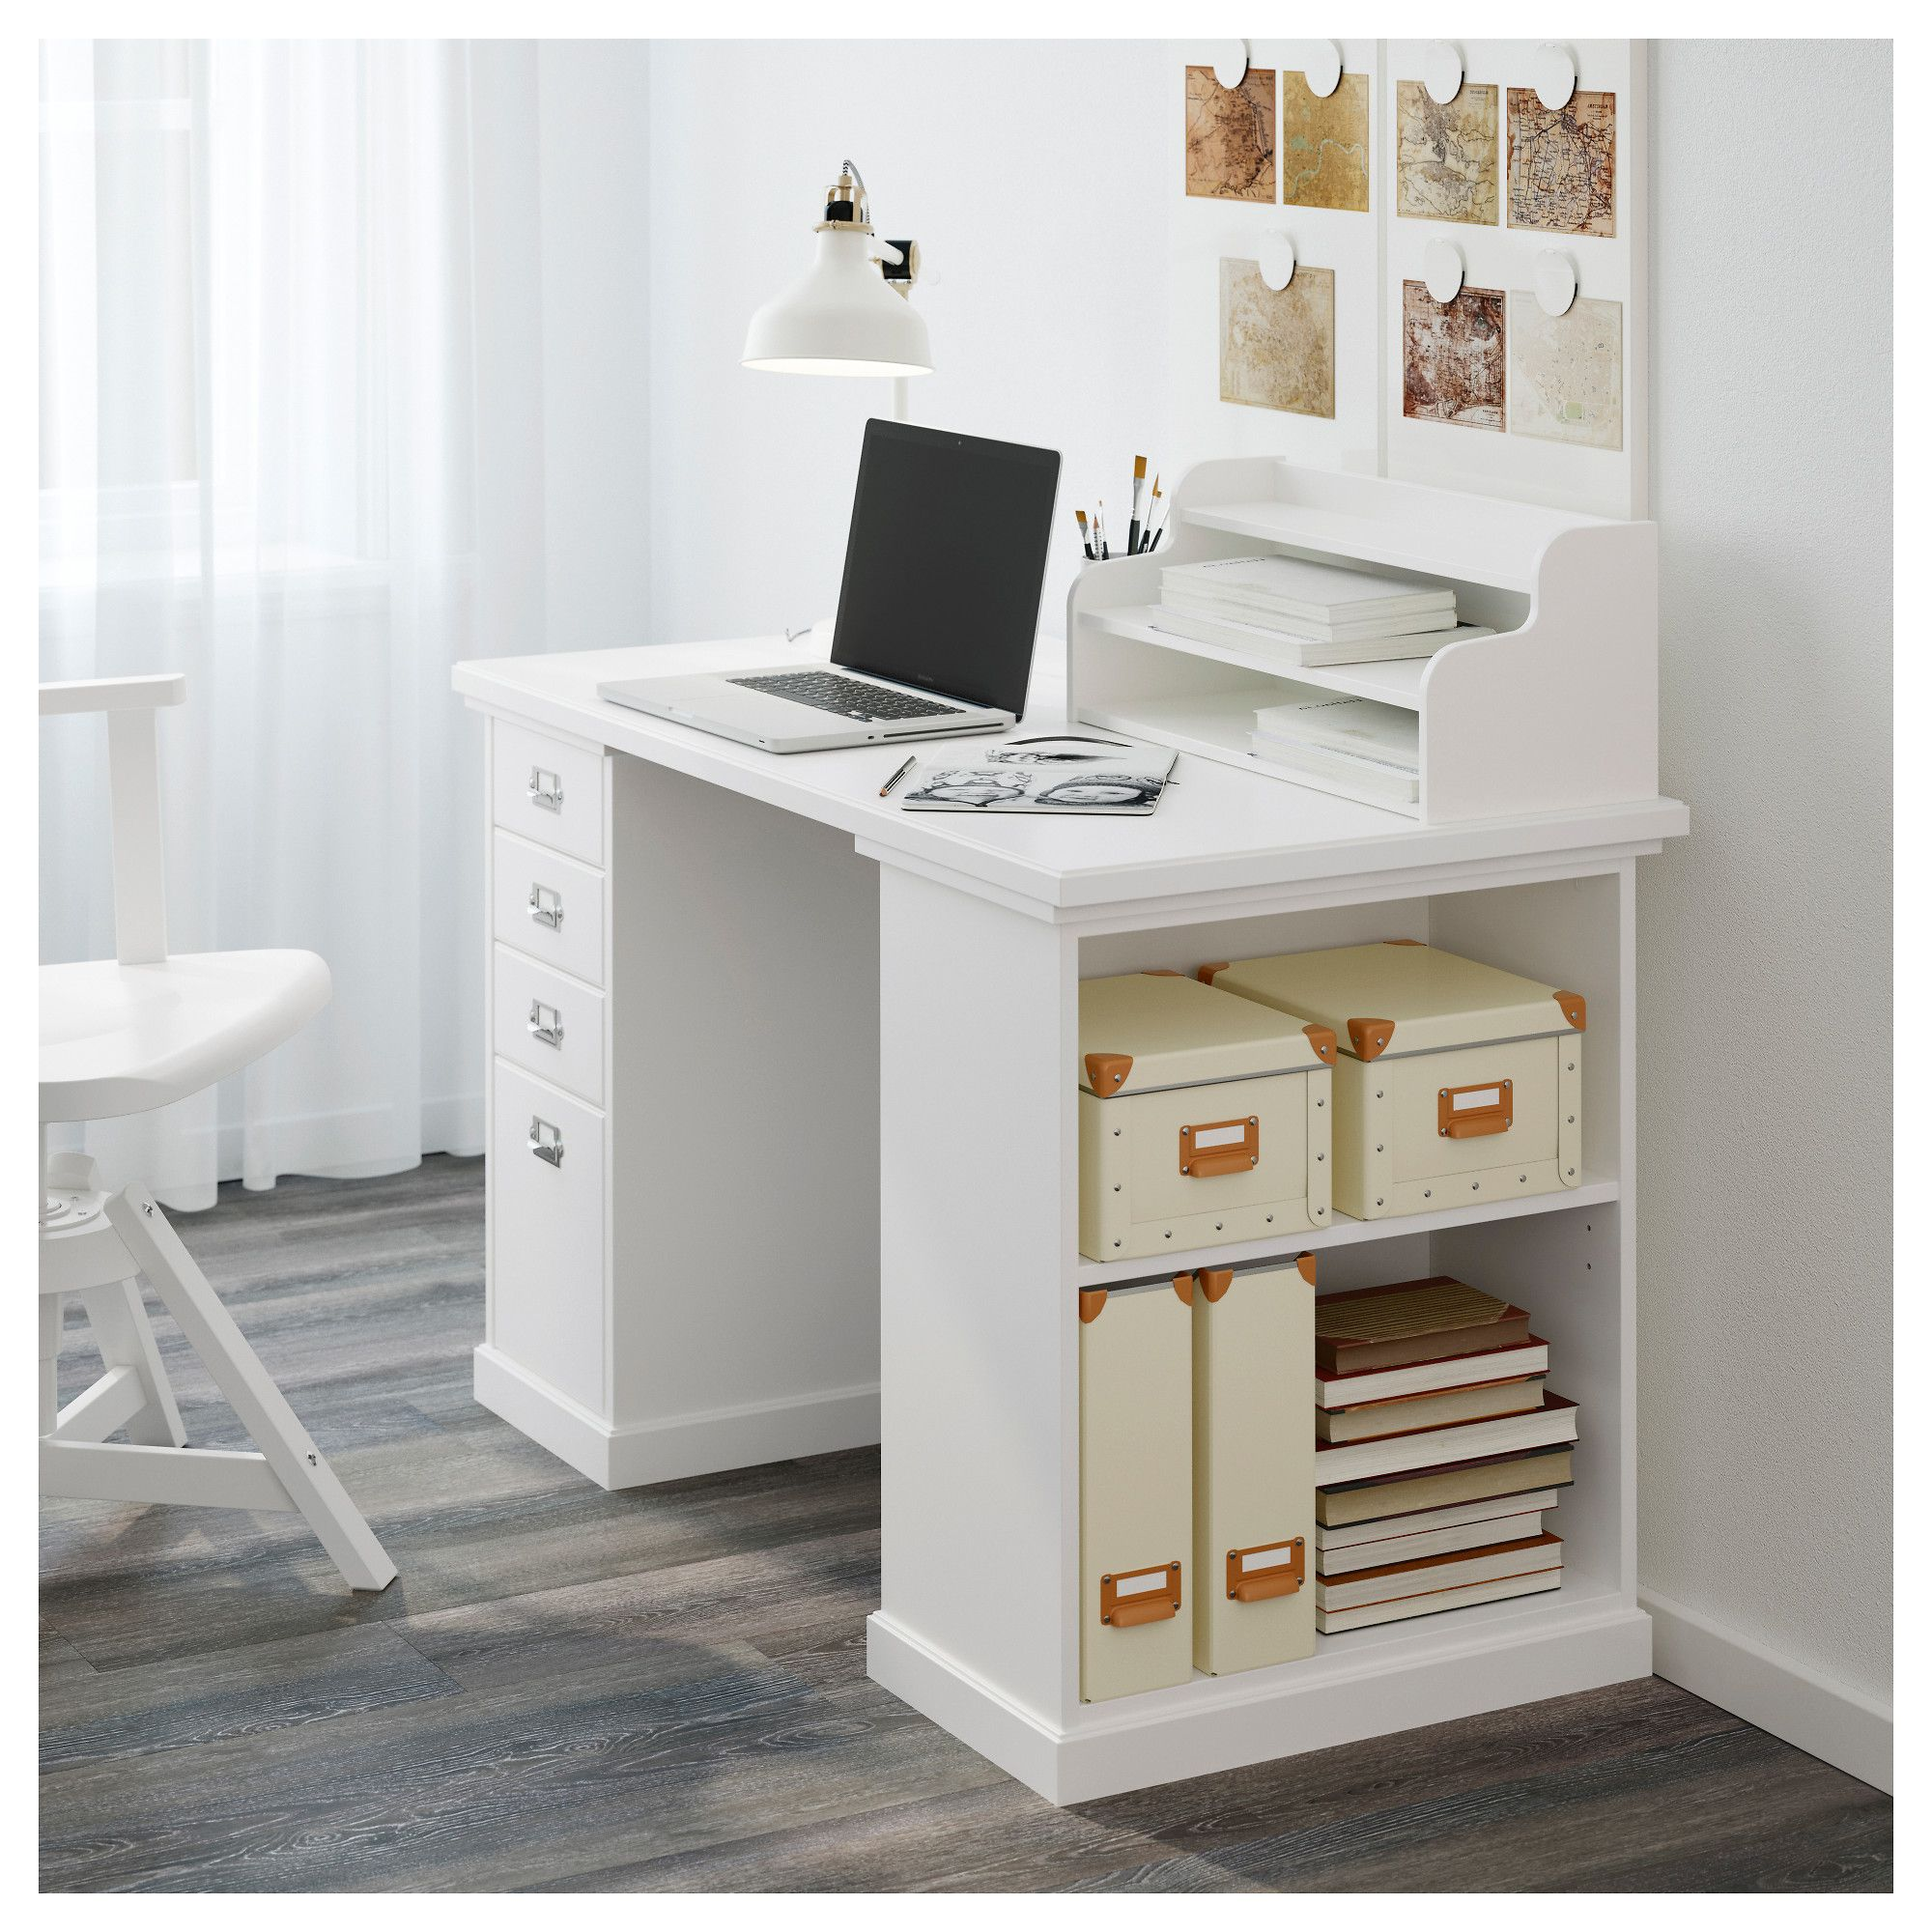 ikea klimpen table with storage the add on unit can be placed on the rh pinterest com